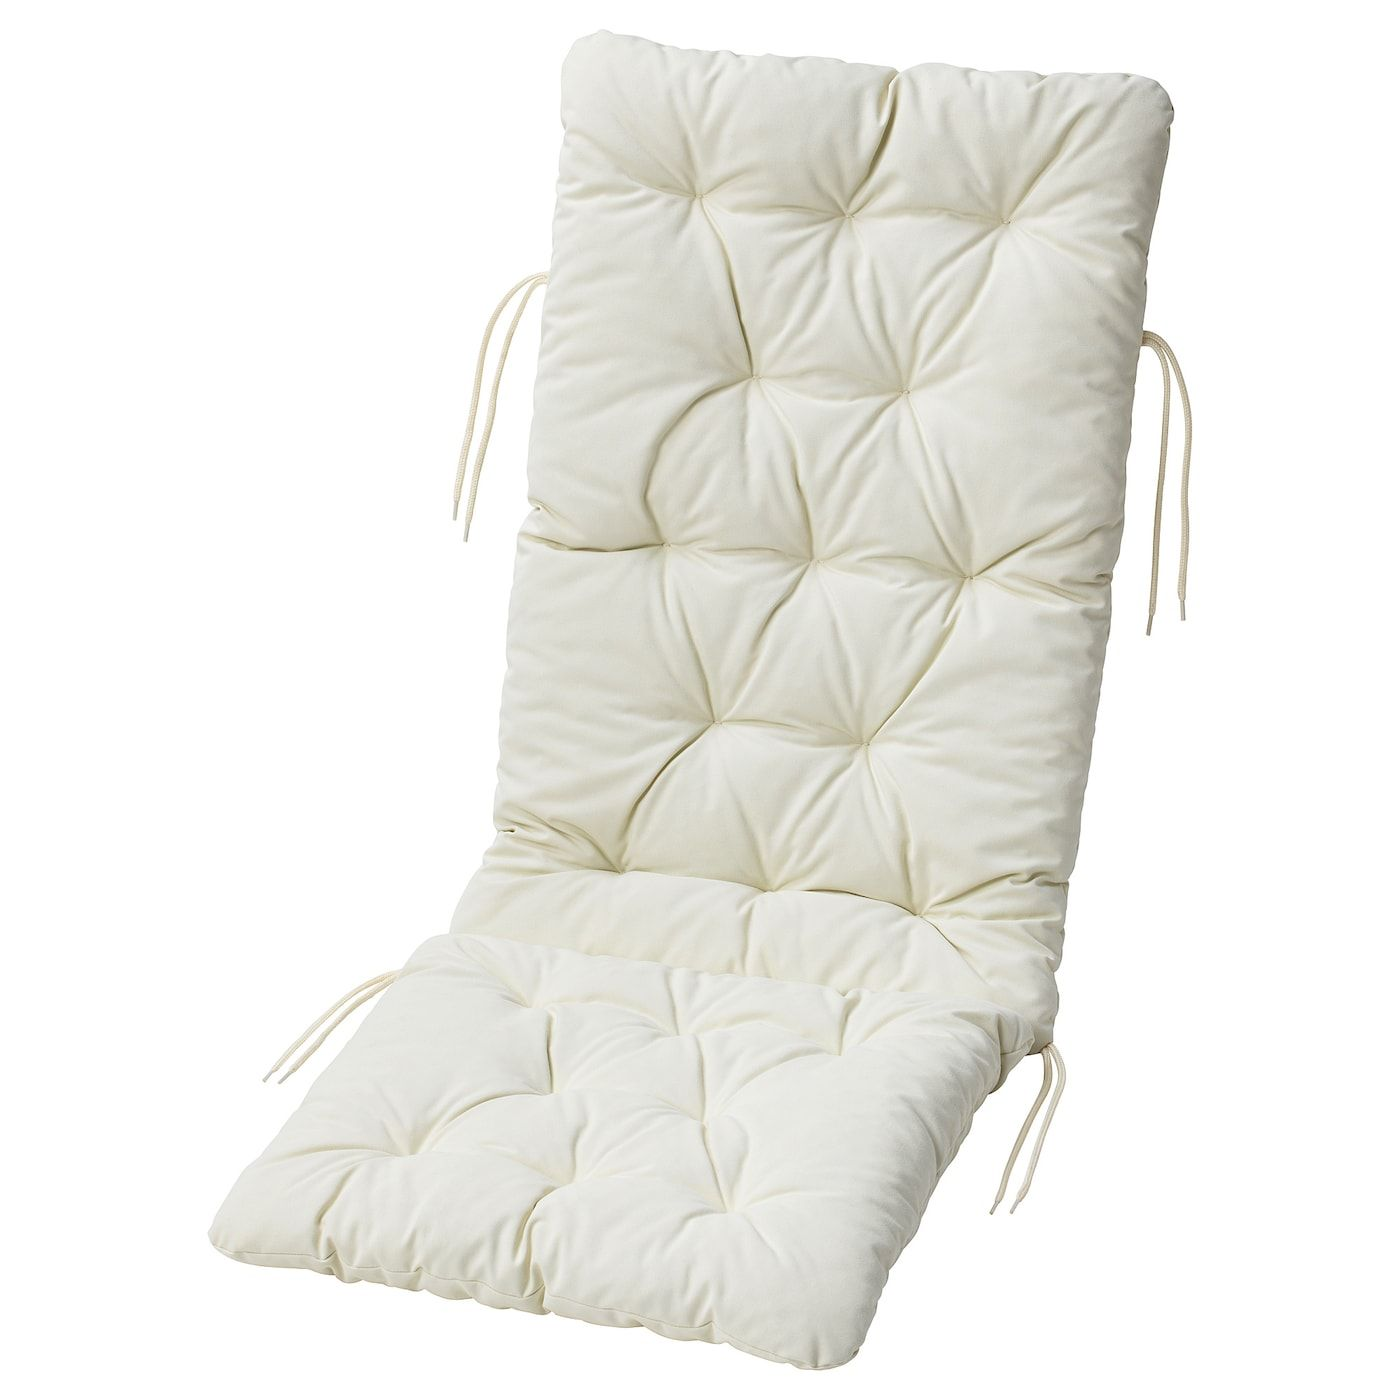 Kuddarna Coussin Siege Dossier Exterieur Beige 116x45cm Ca Fr Ikea In 2020 Outdoor Seat Cushions Ikea Cushions